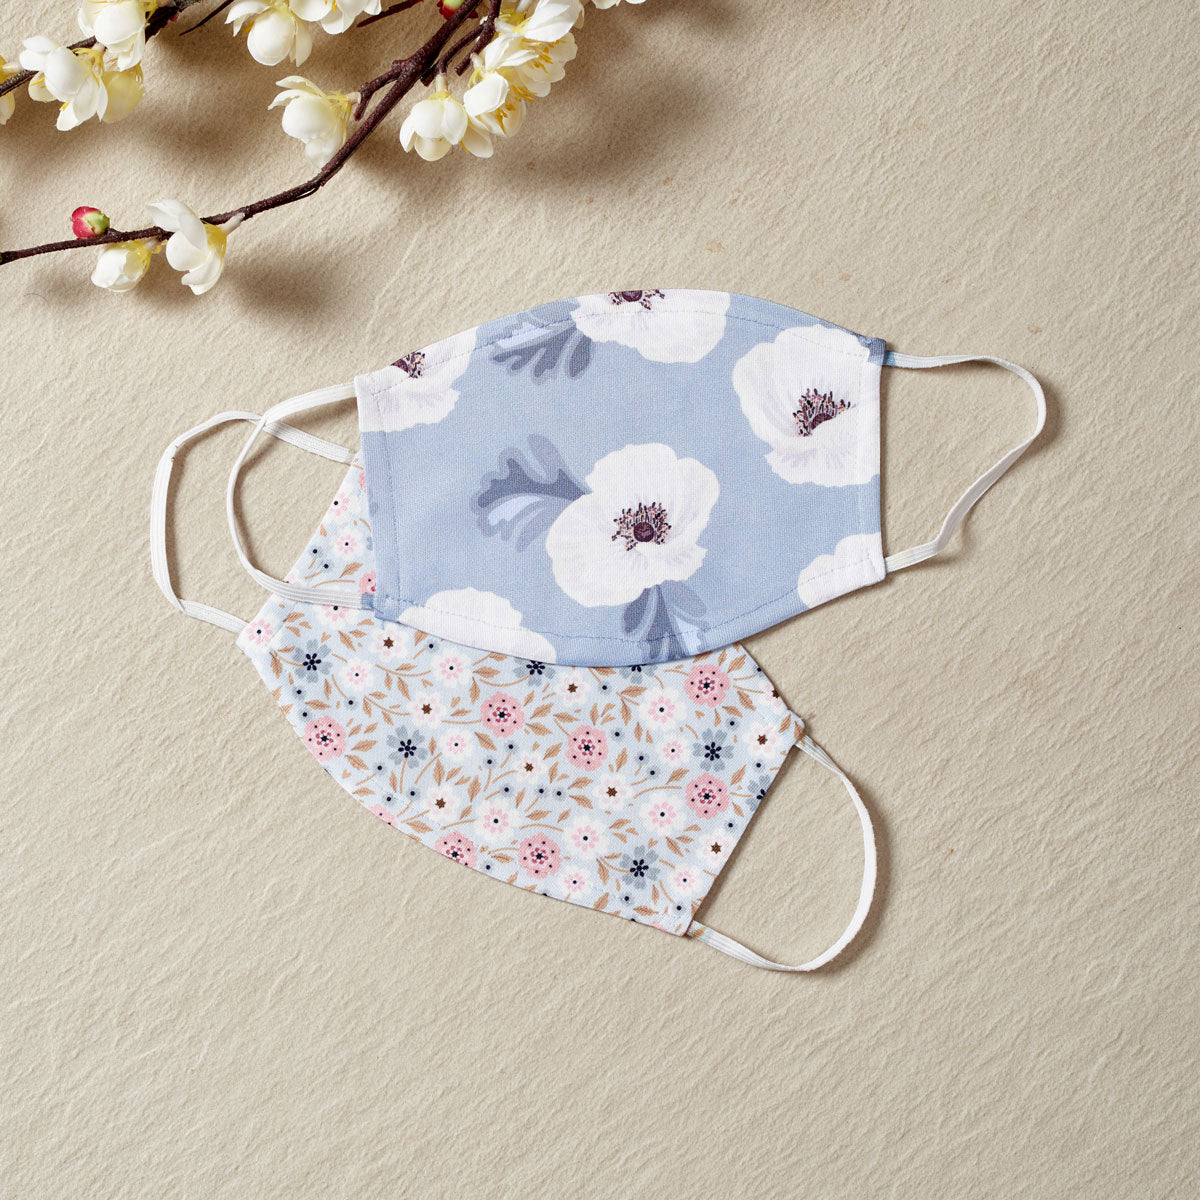 Floral Bliss - Set Of Two Reusable Fabric Face Masks